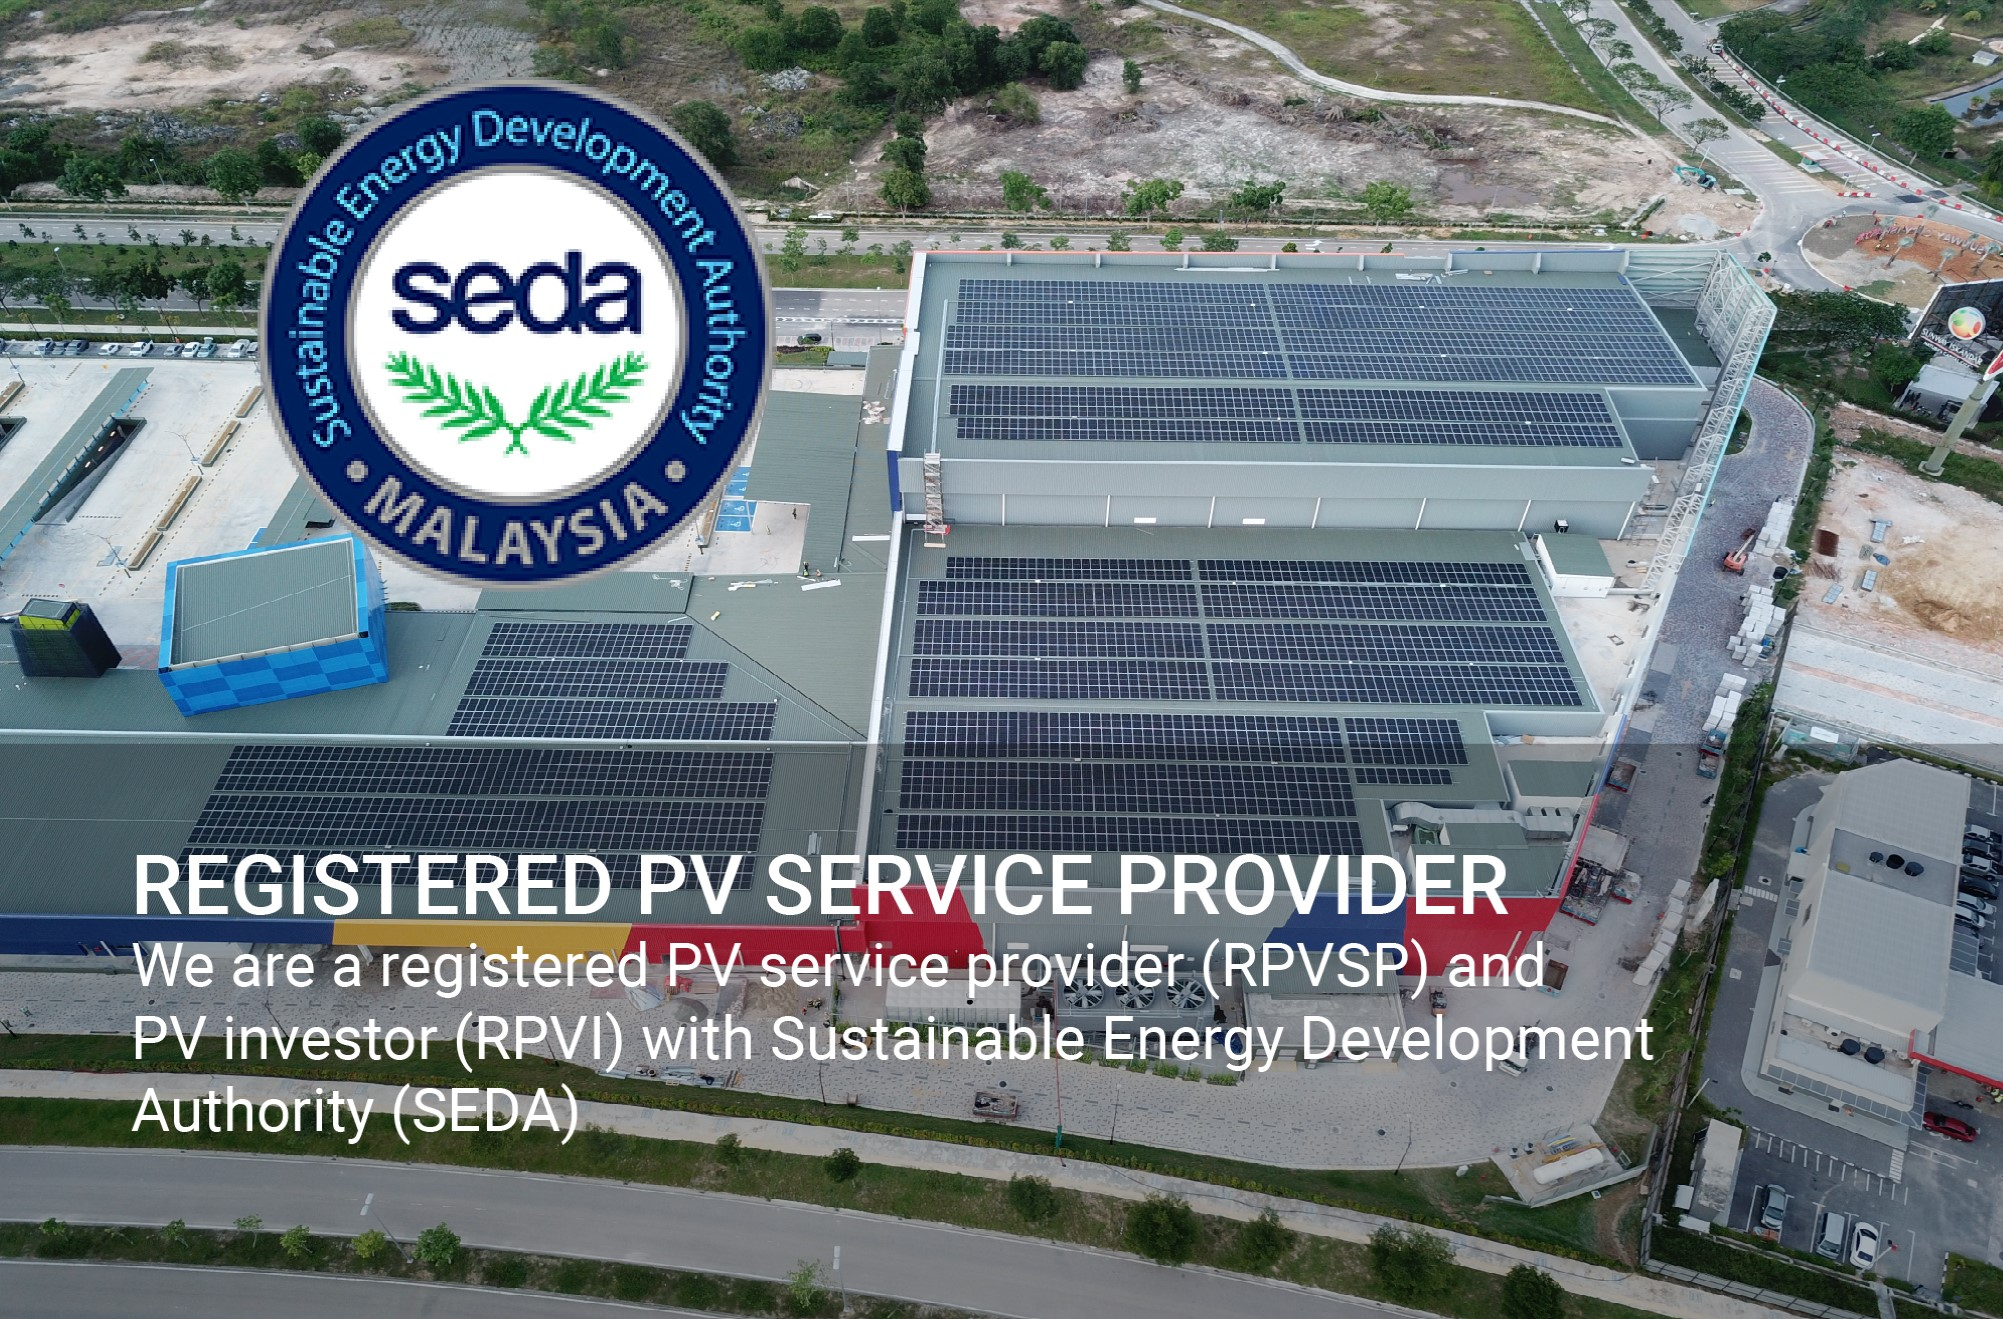 We are a registered PV service provider (RPVSP) and PV investor (RPVI) with Sustainable Energy Development Authority (SEDA)